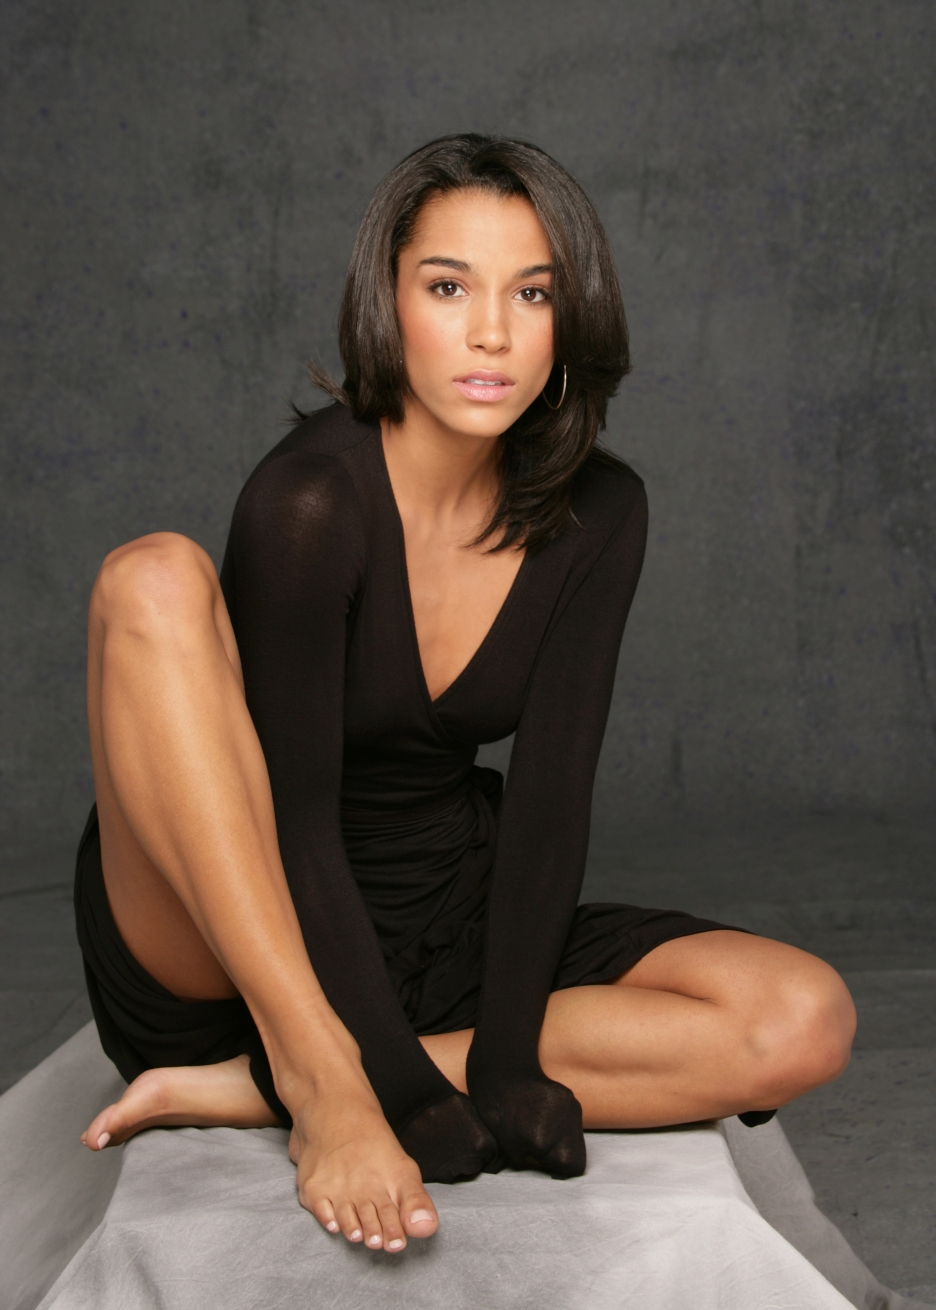 Congratulate, this Regina hall sexy feet sorry, that